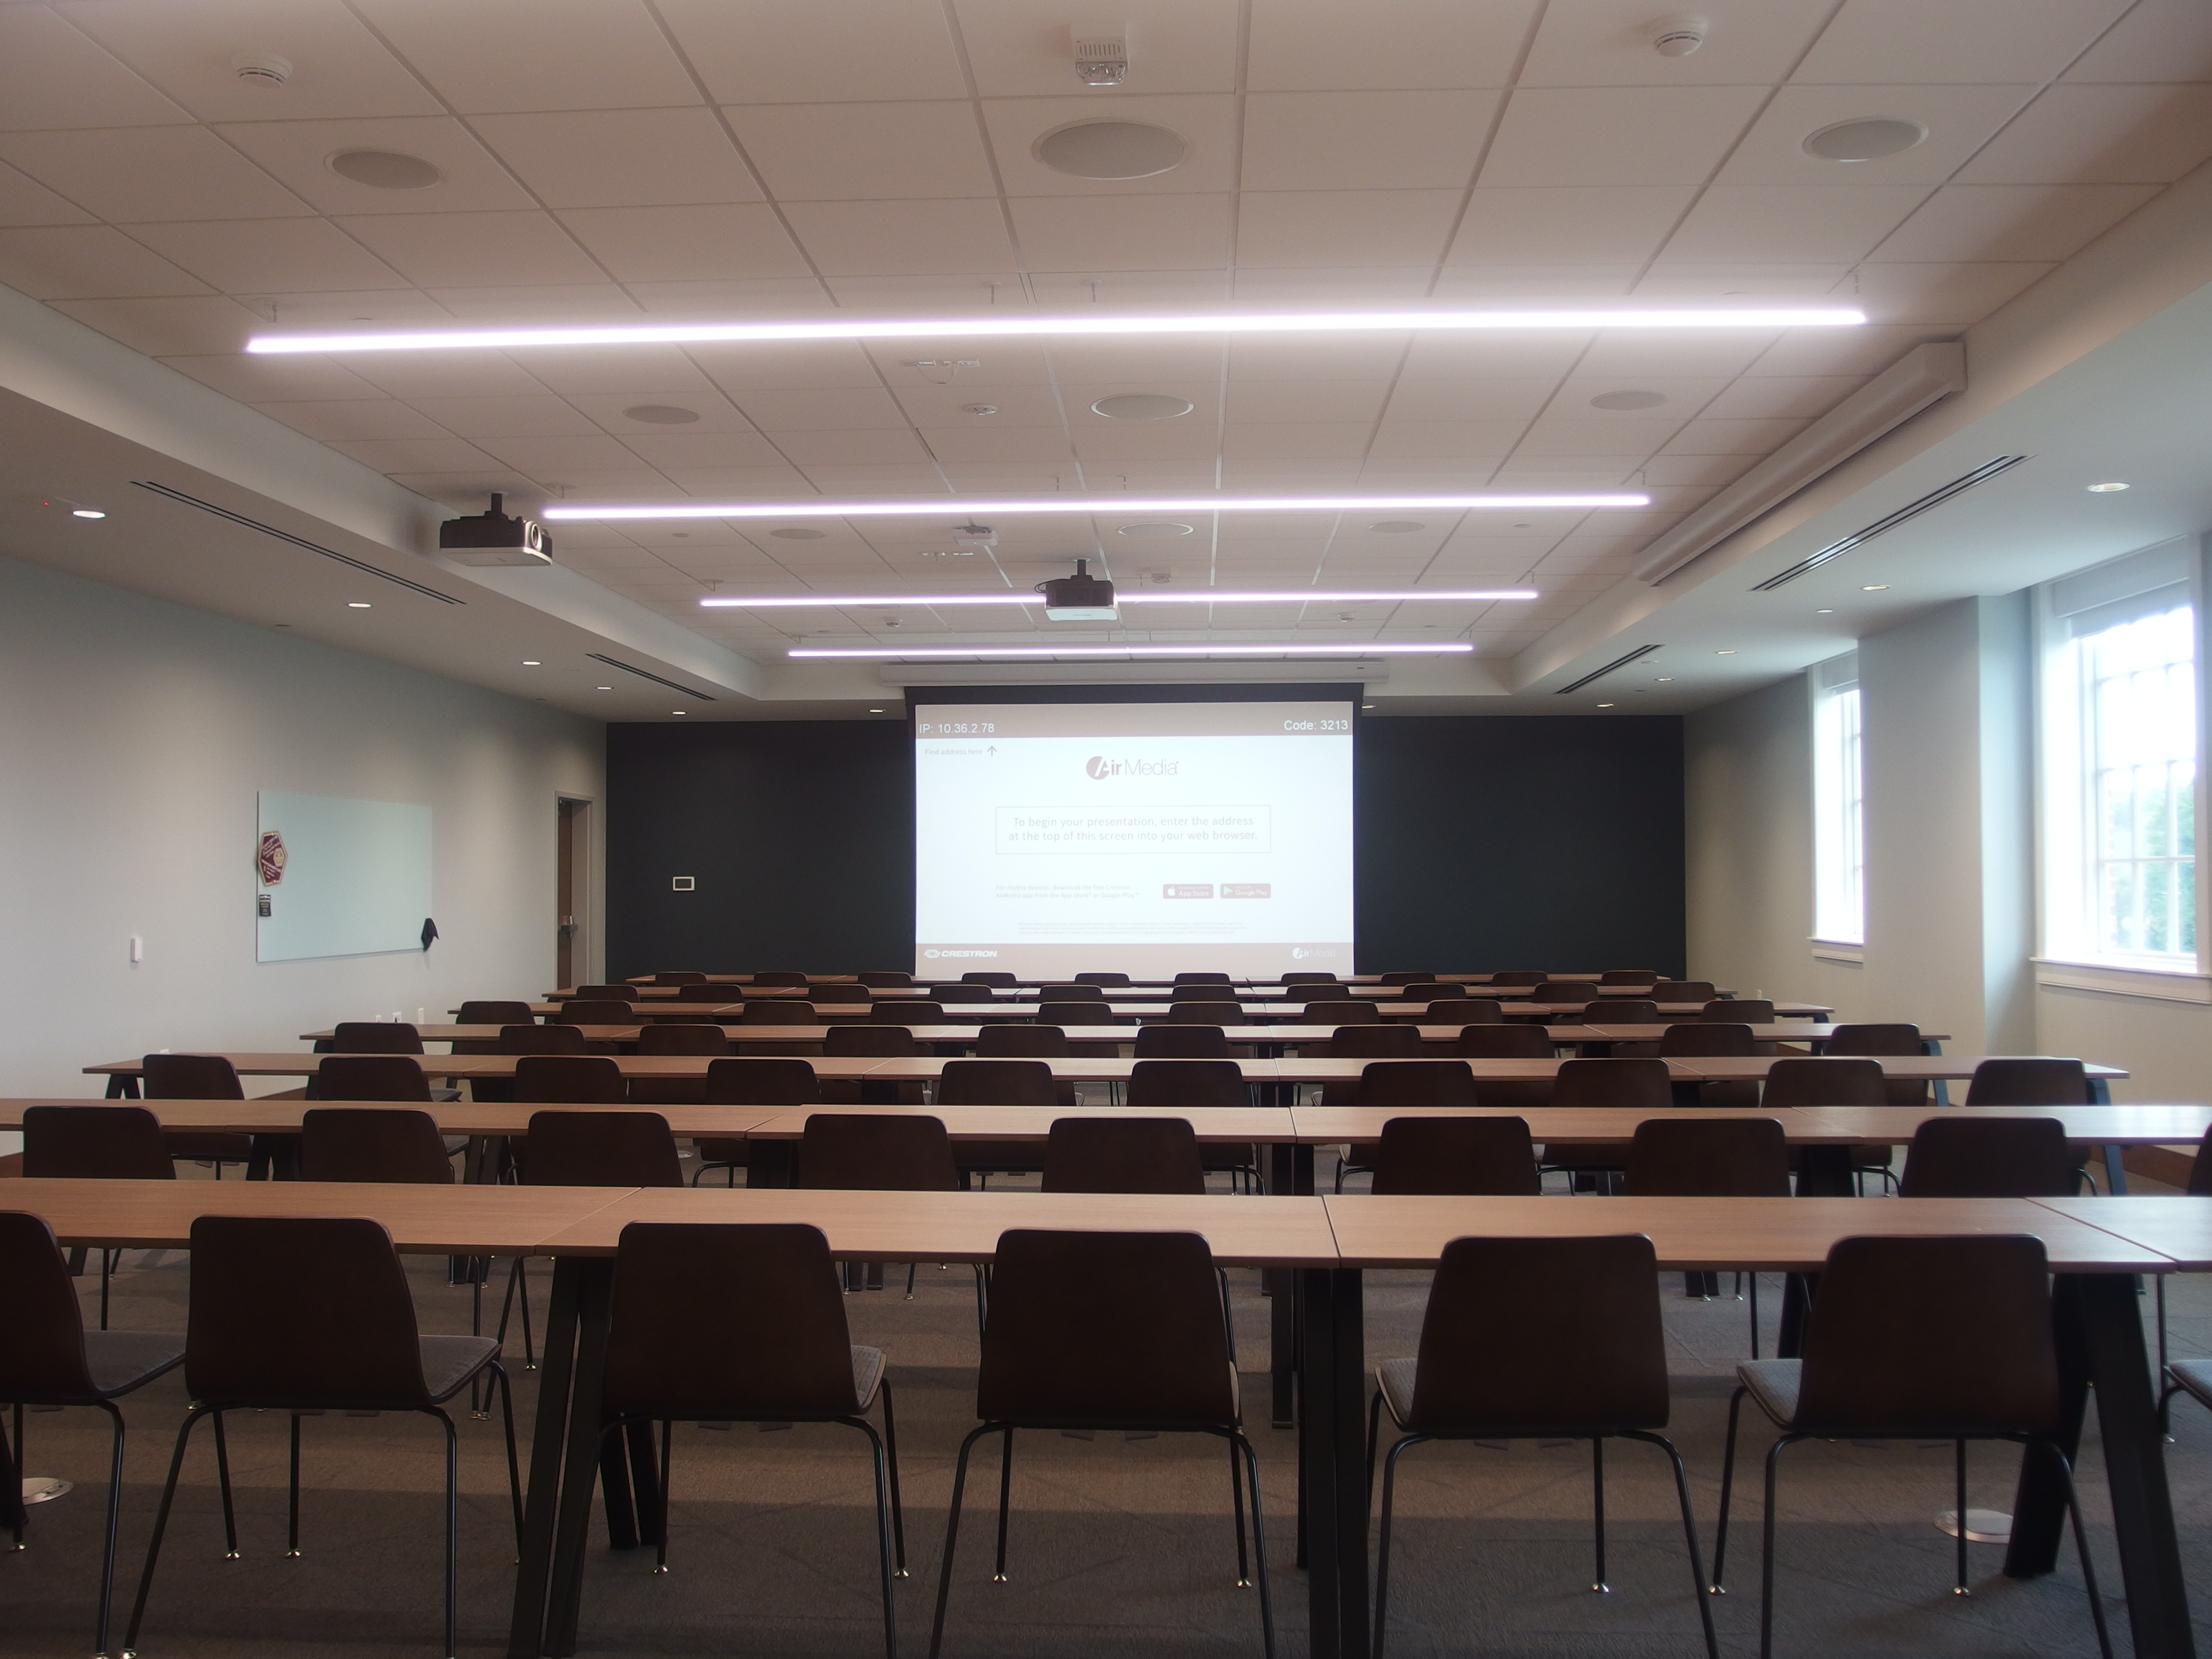 Picture of Sankey 208 from the back of the room